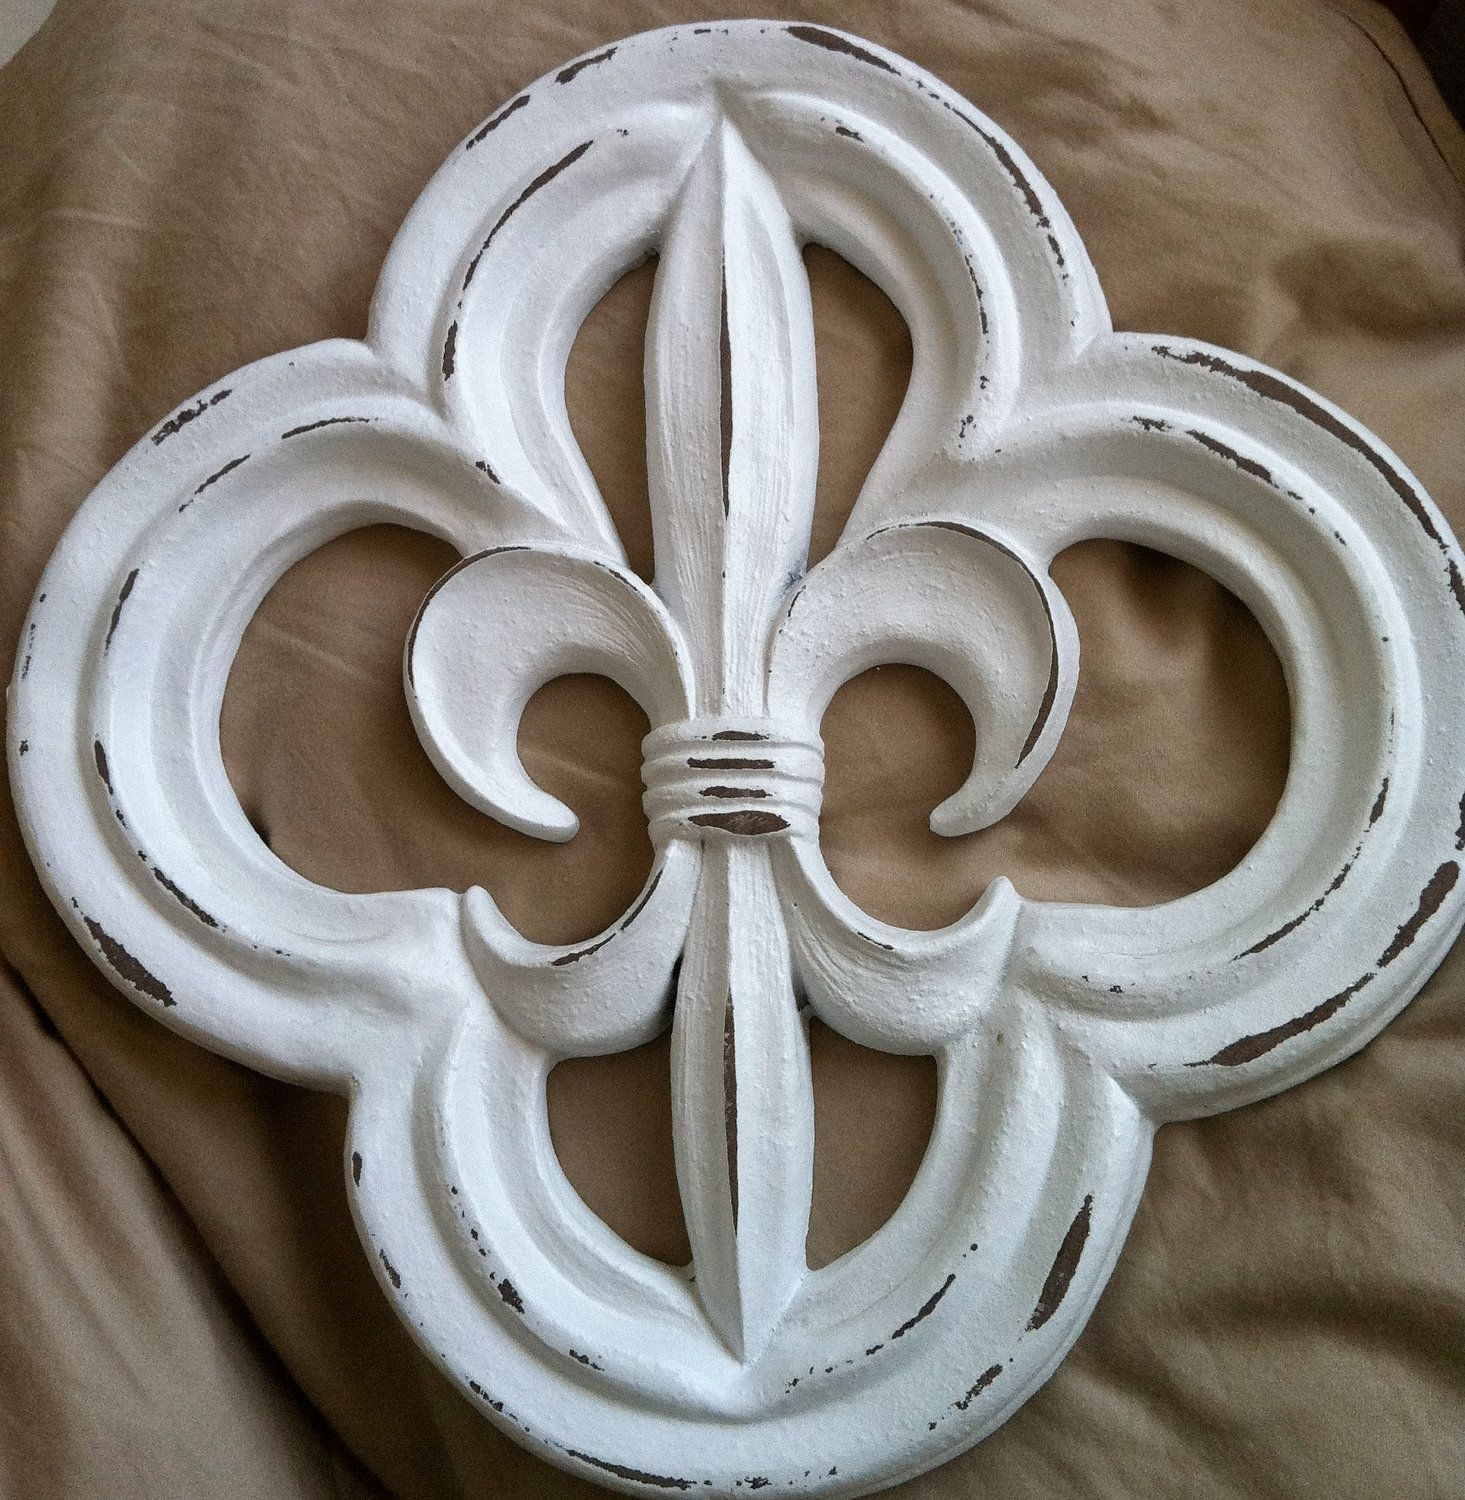 Fleur De Lis Wall Decor | Design Ideas And Decor | Louisiana Theme pertaining to Fleur De Lis Wall Art (Image 9 of 20)